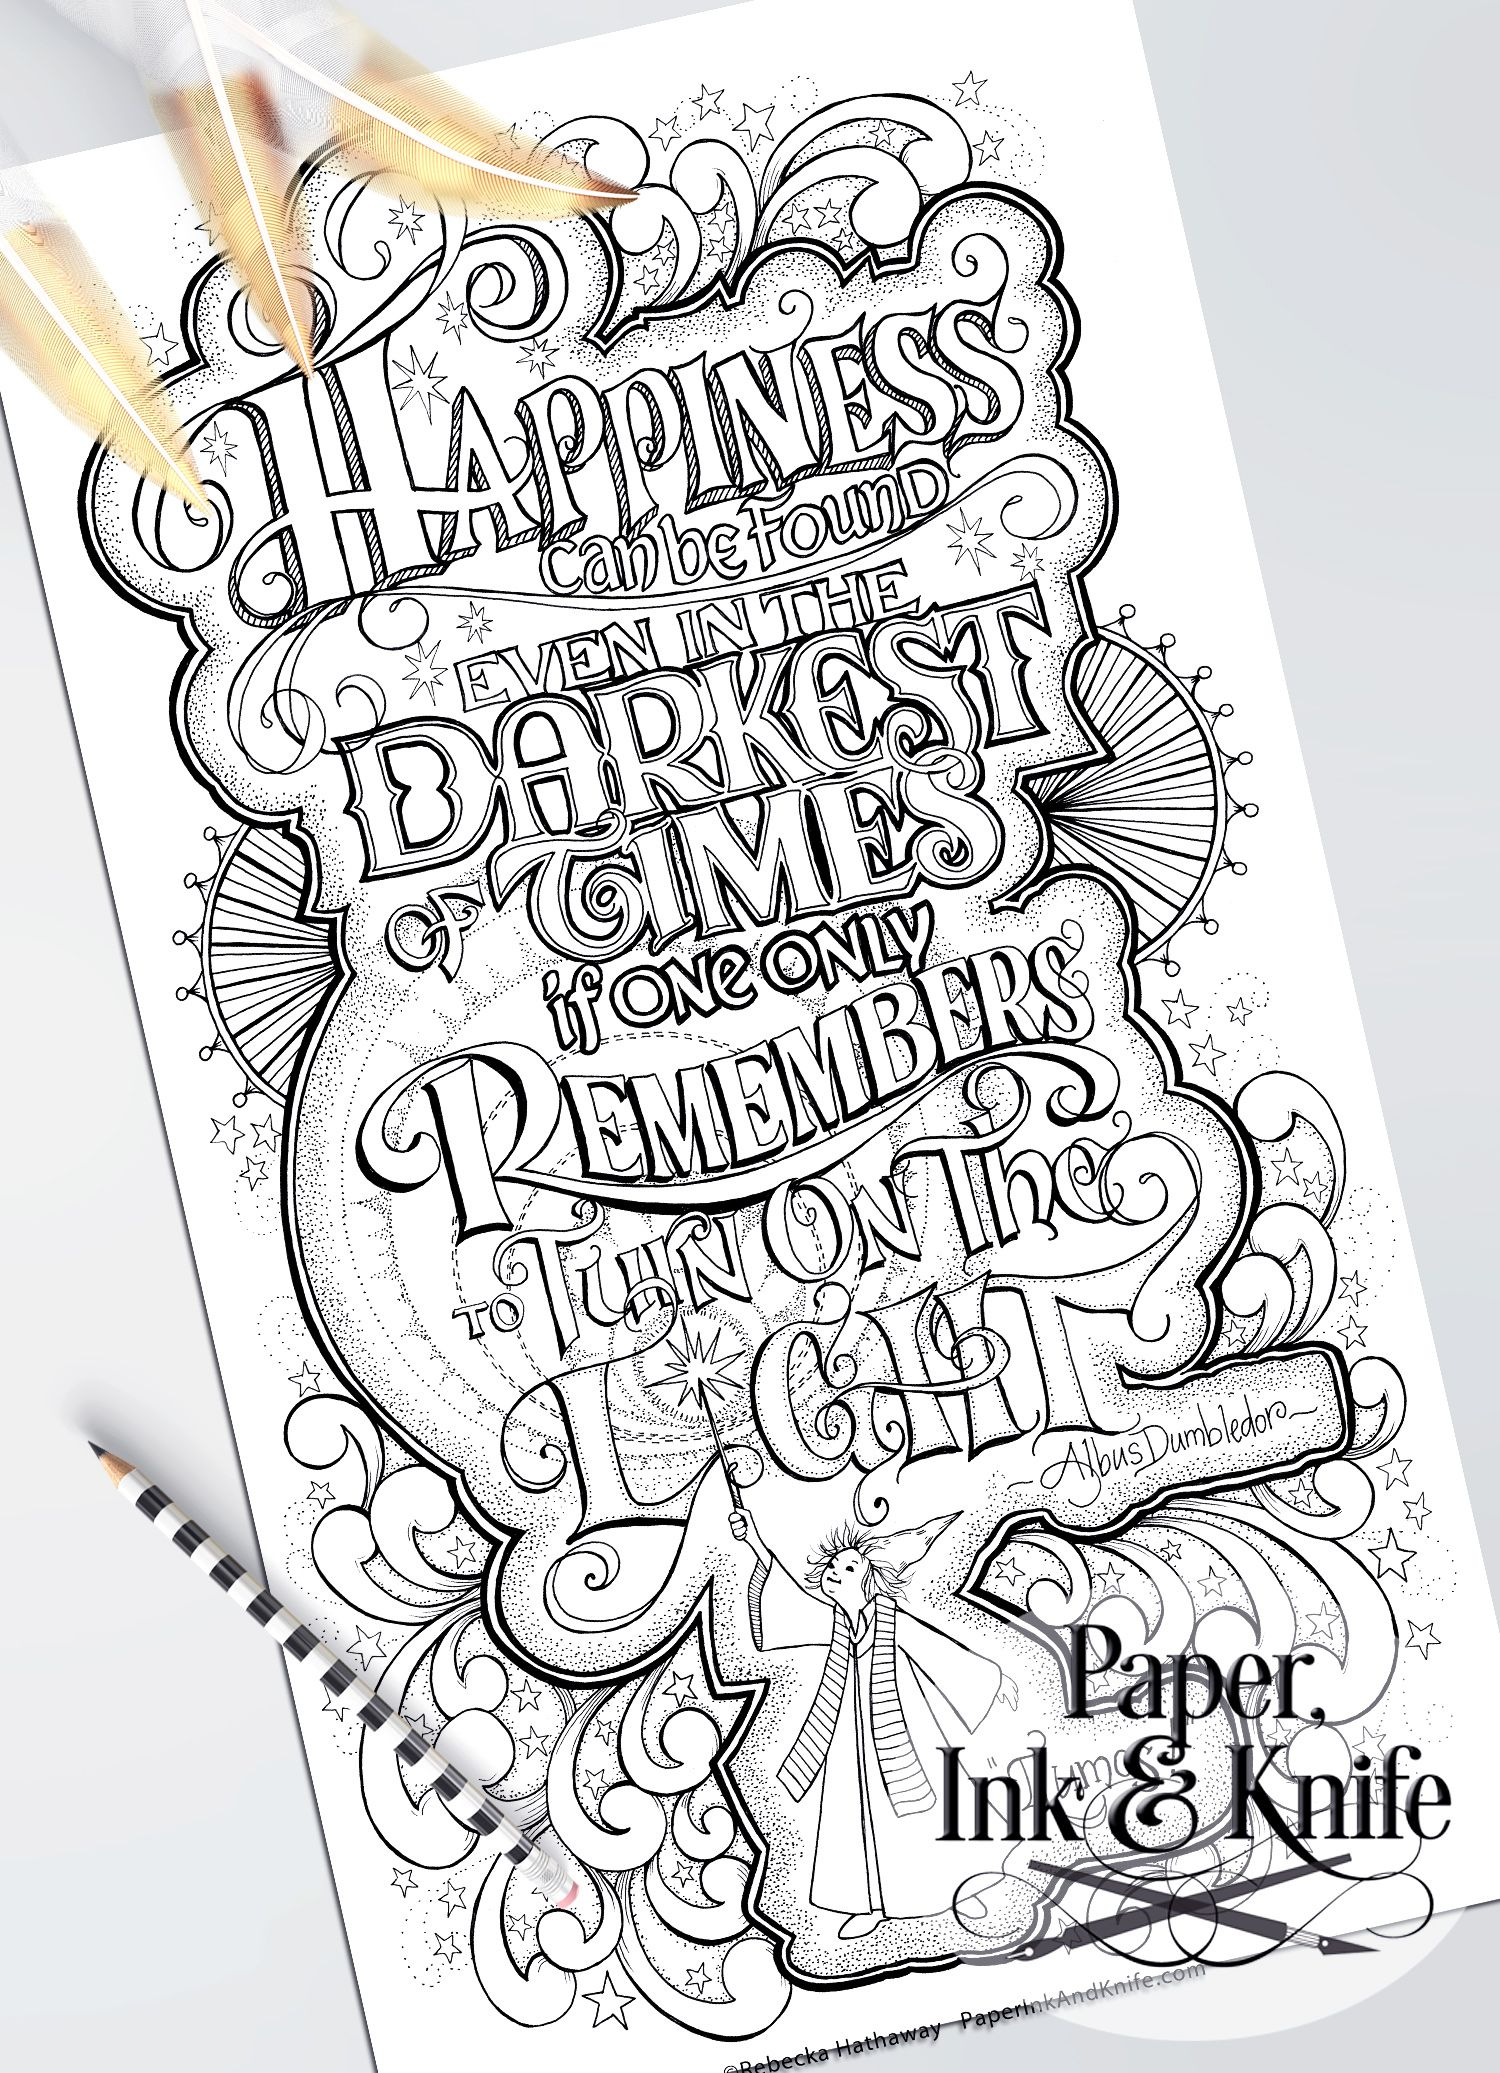 Happiness Can Still Be Found Coloring Page Paper Ink And Knife Harry Potter Coloring Pages Harry Potter Coloring Book Harry Potter Colors